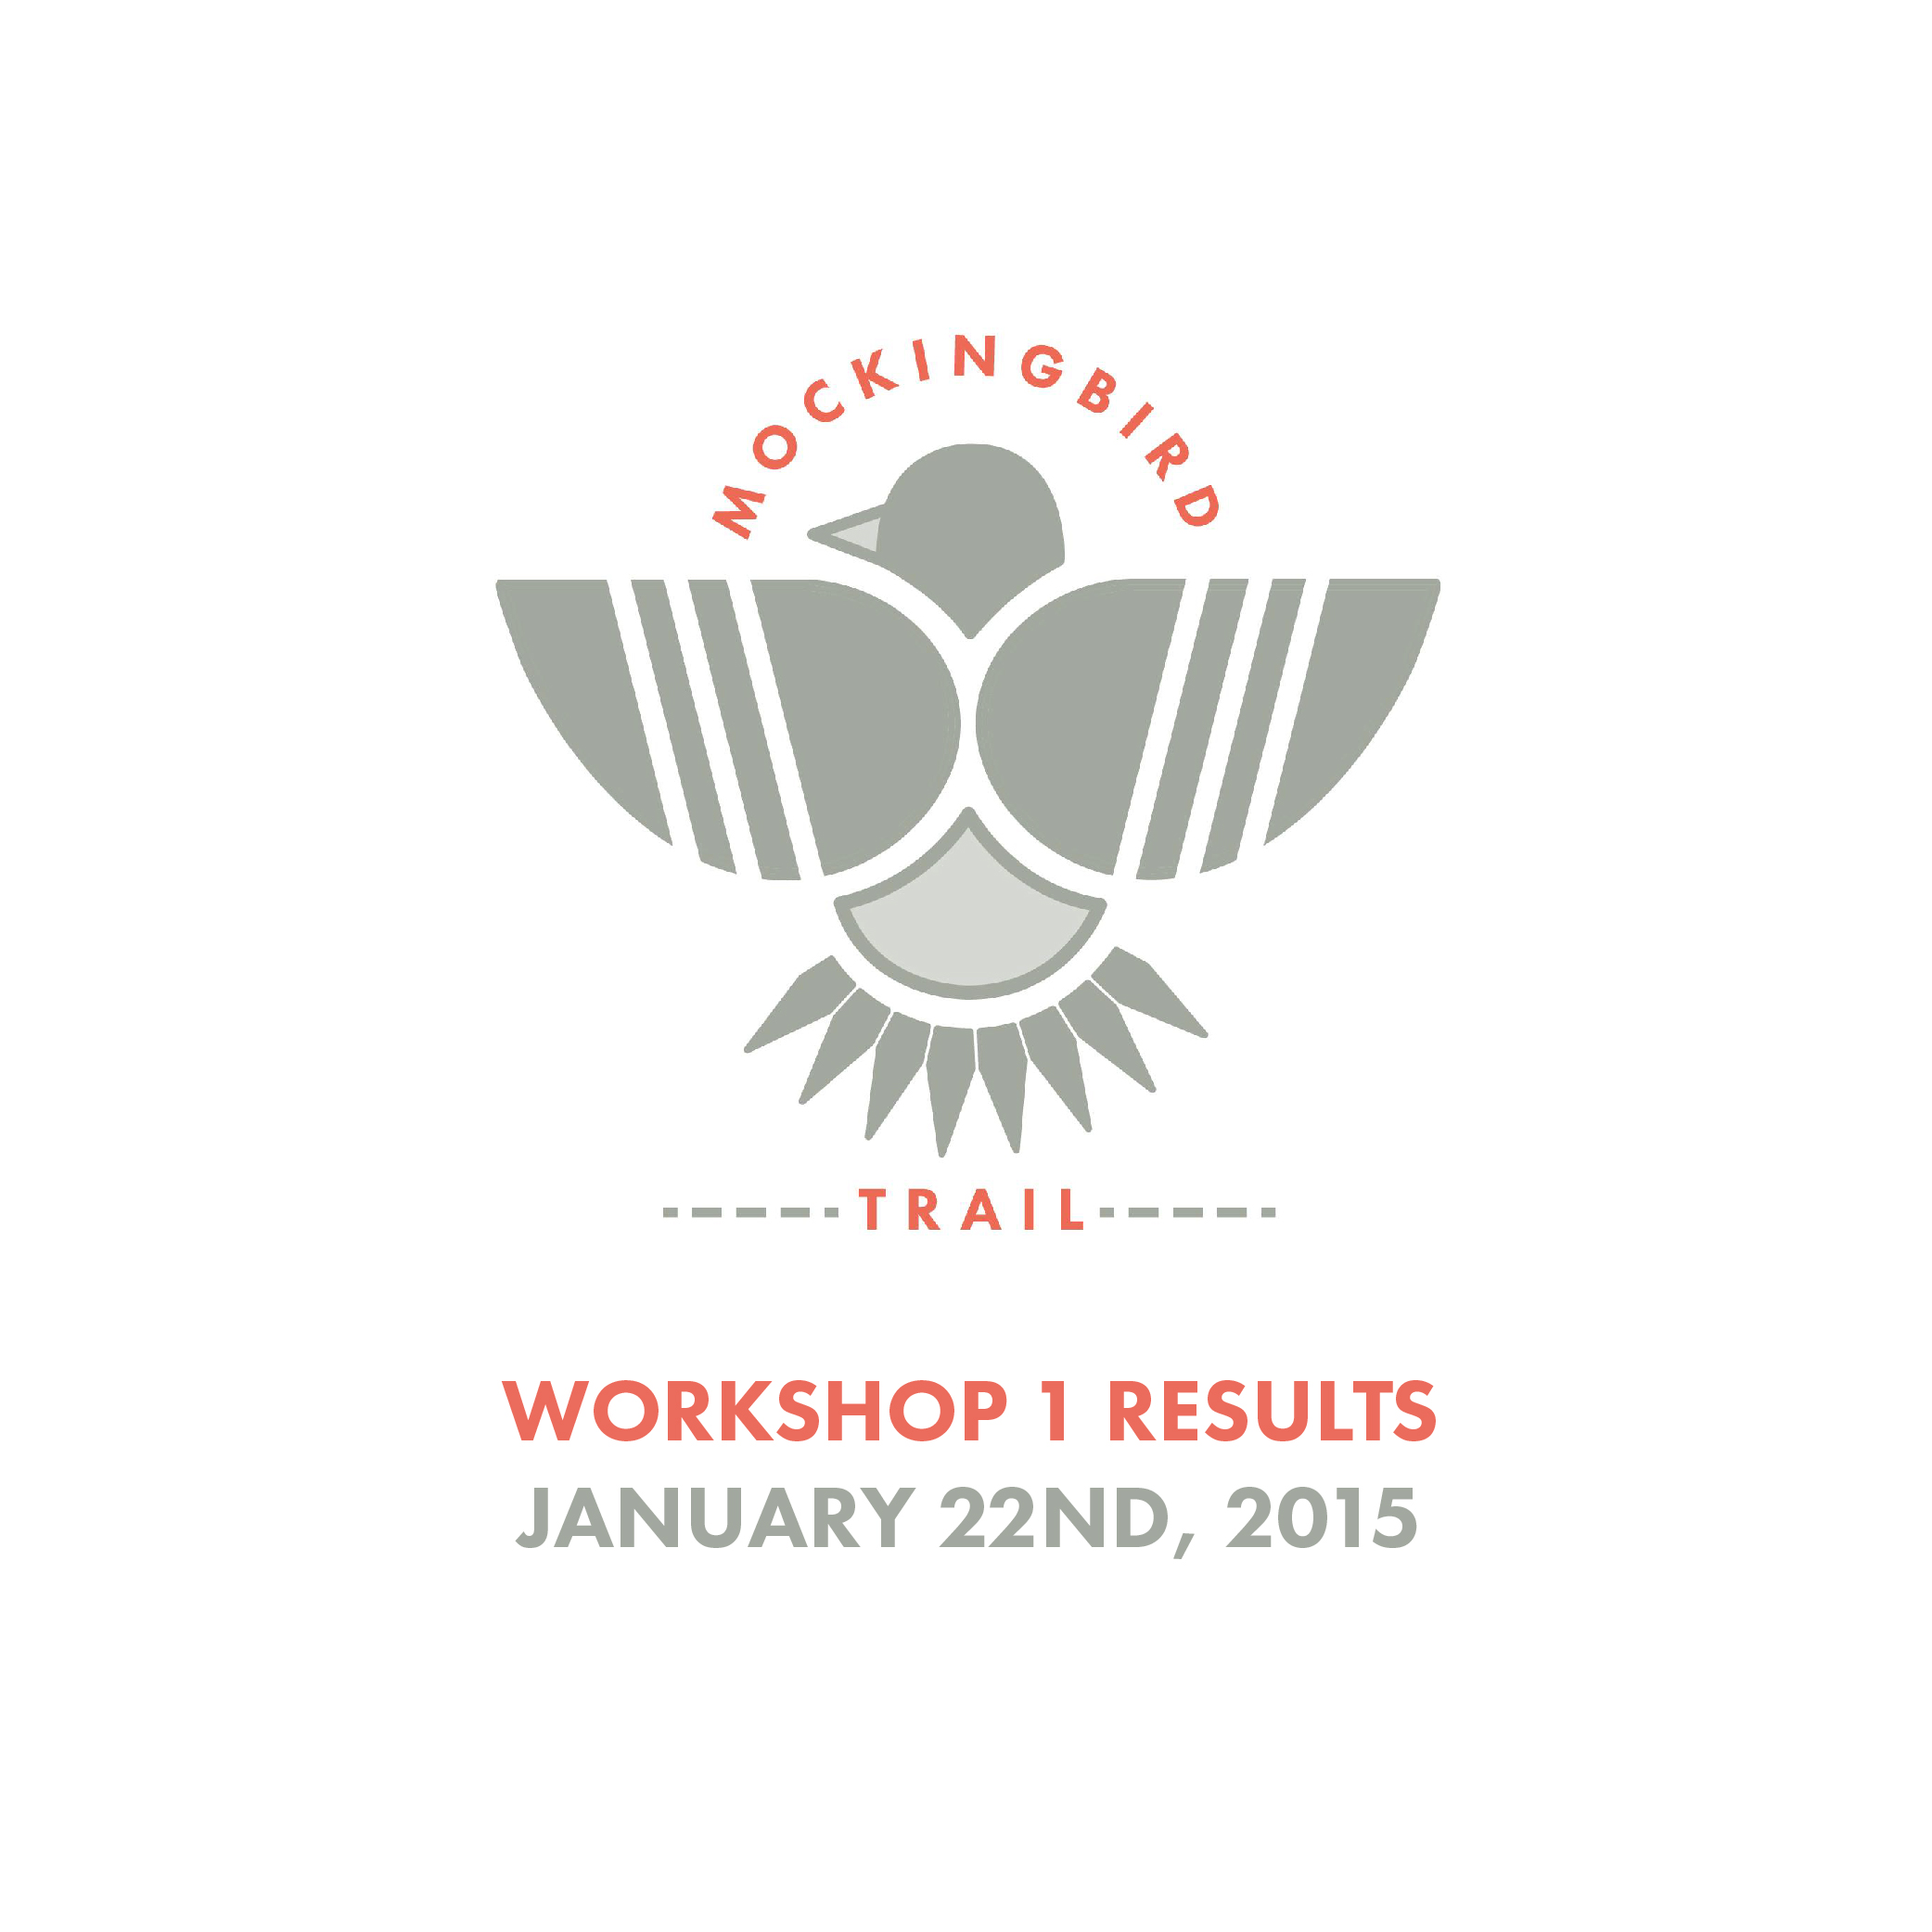 Mockingbird Trail | Workshop 1 Results